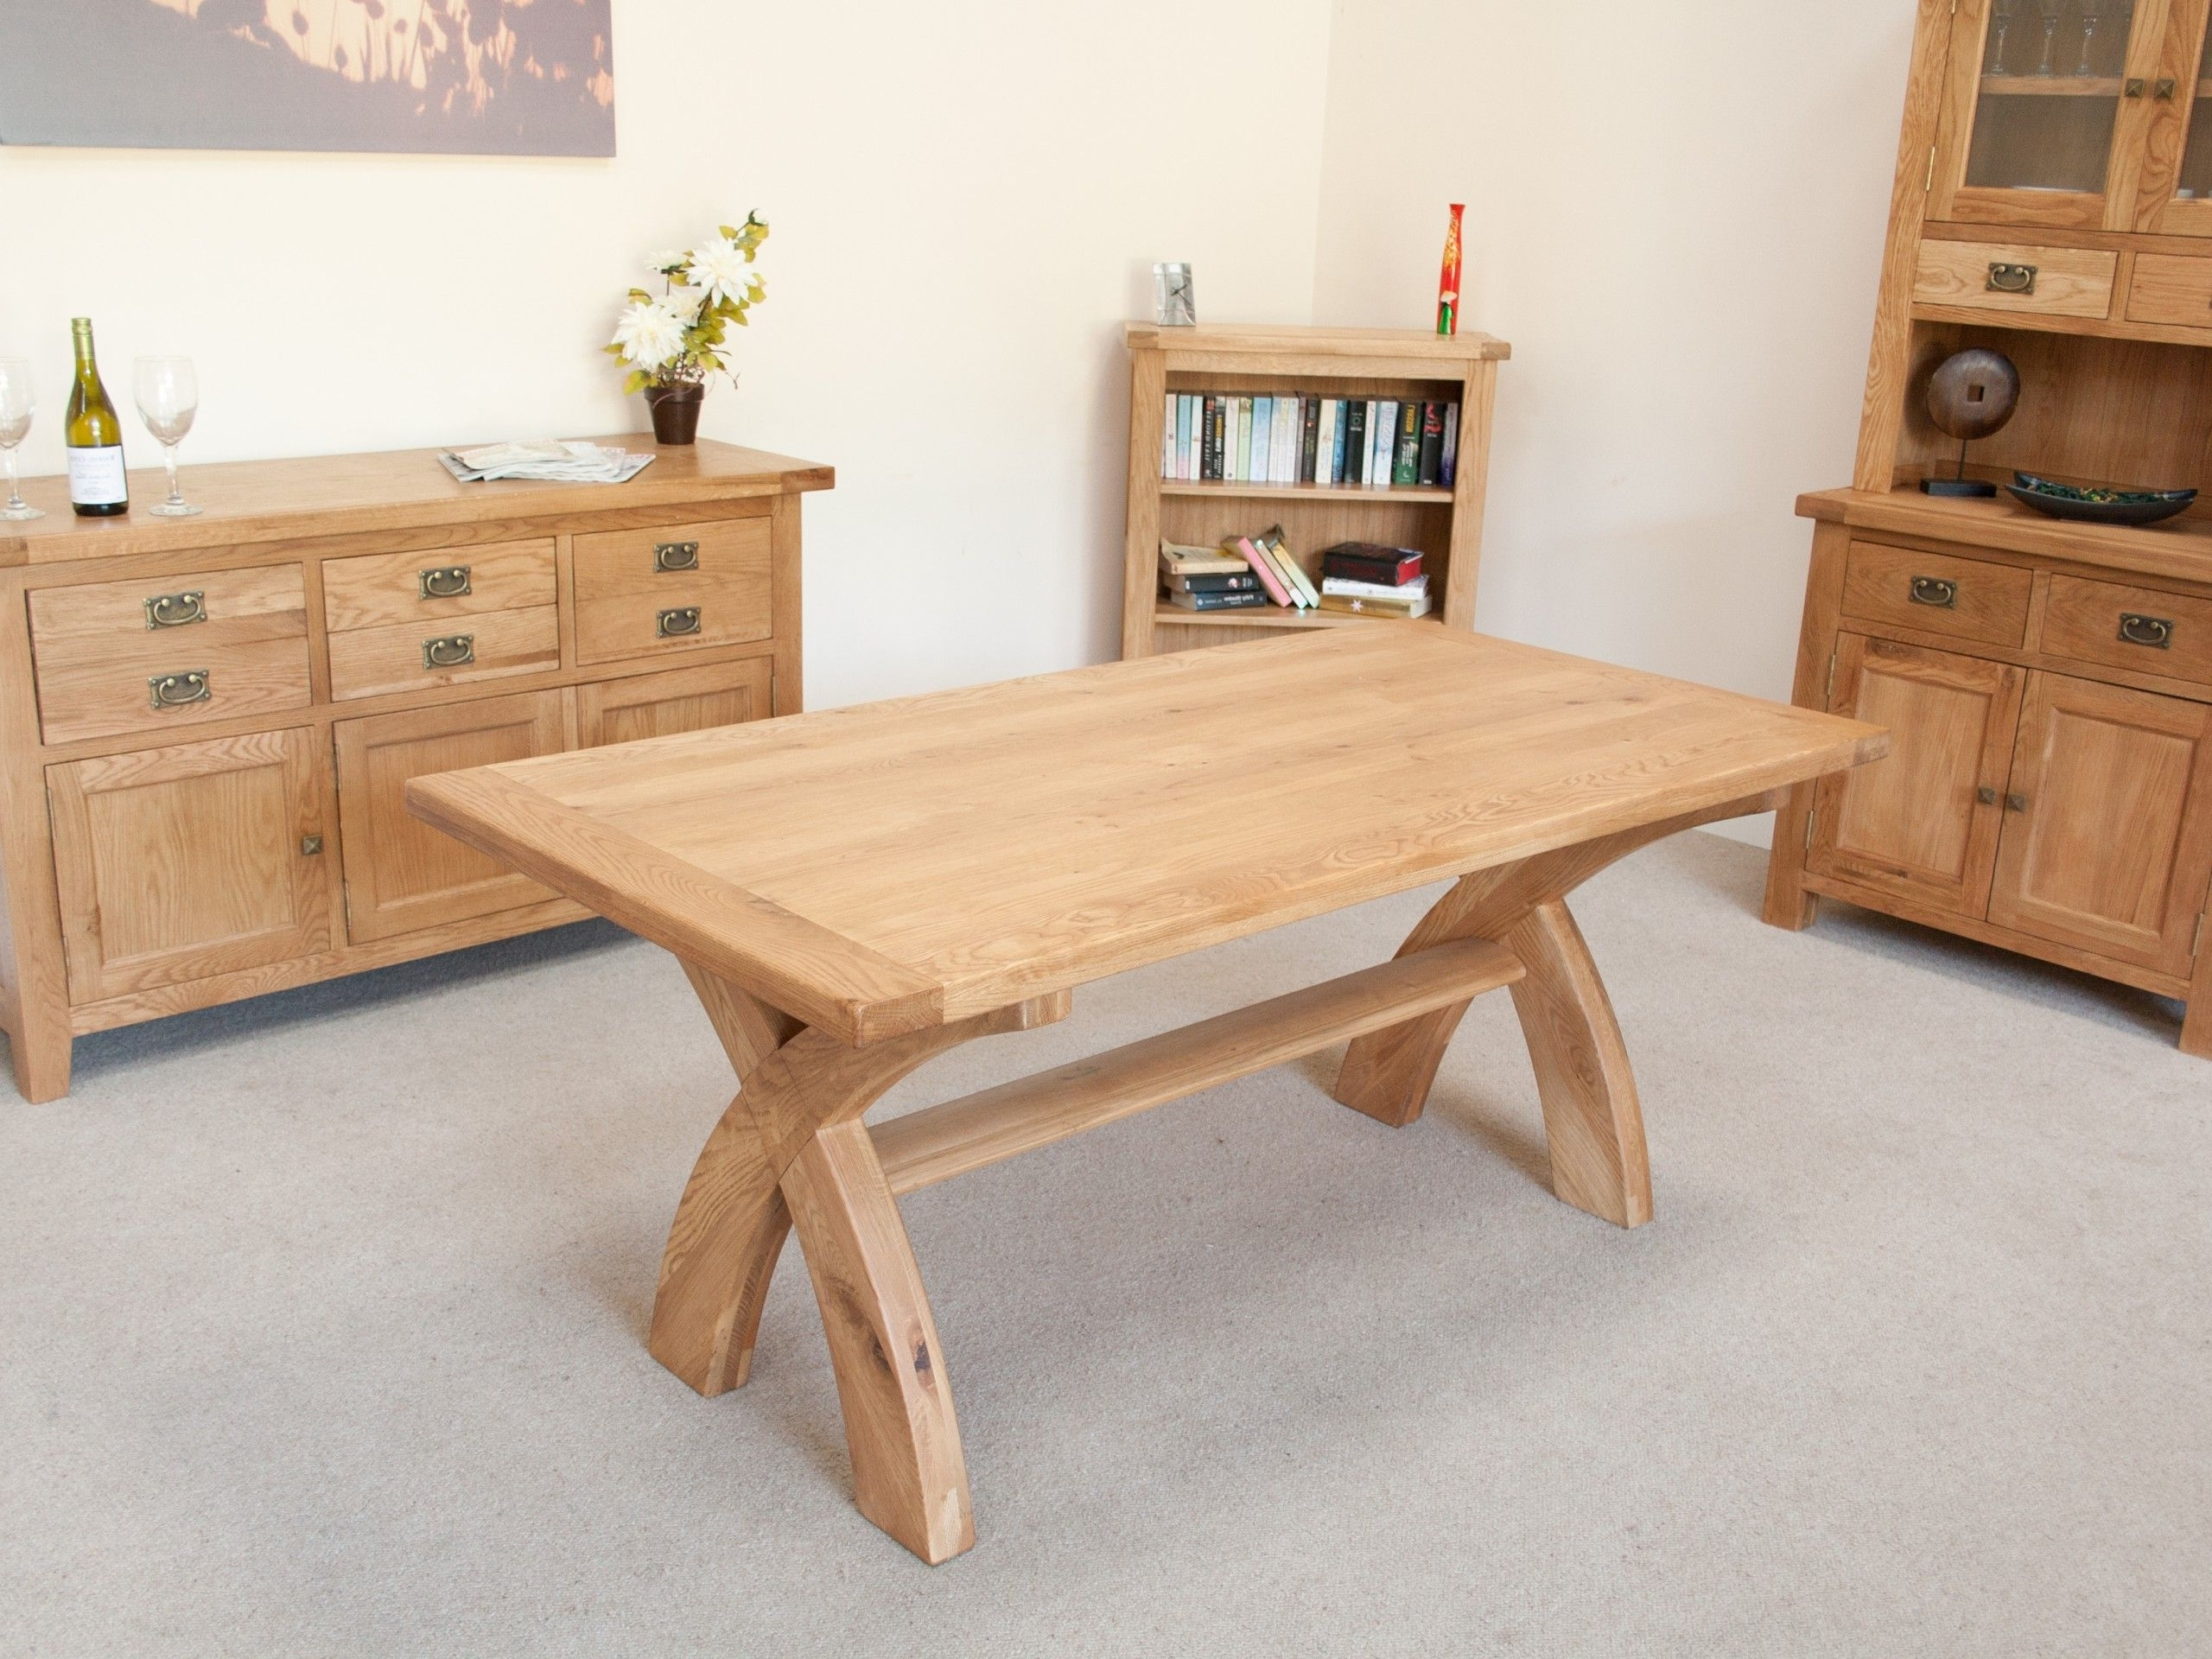 8 Seater Cross Leg Table intended for Most Recent 8 Seater Oak Dining Tables